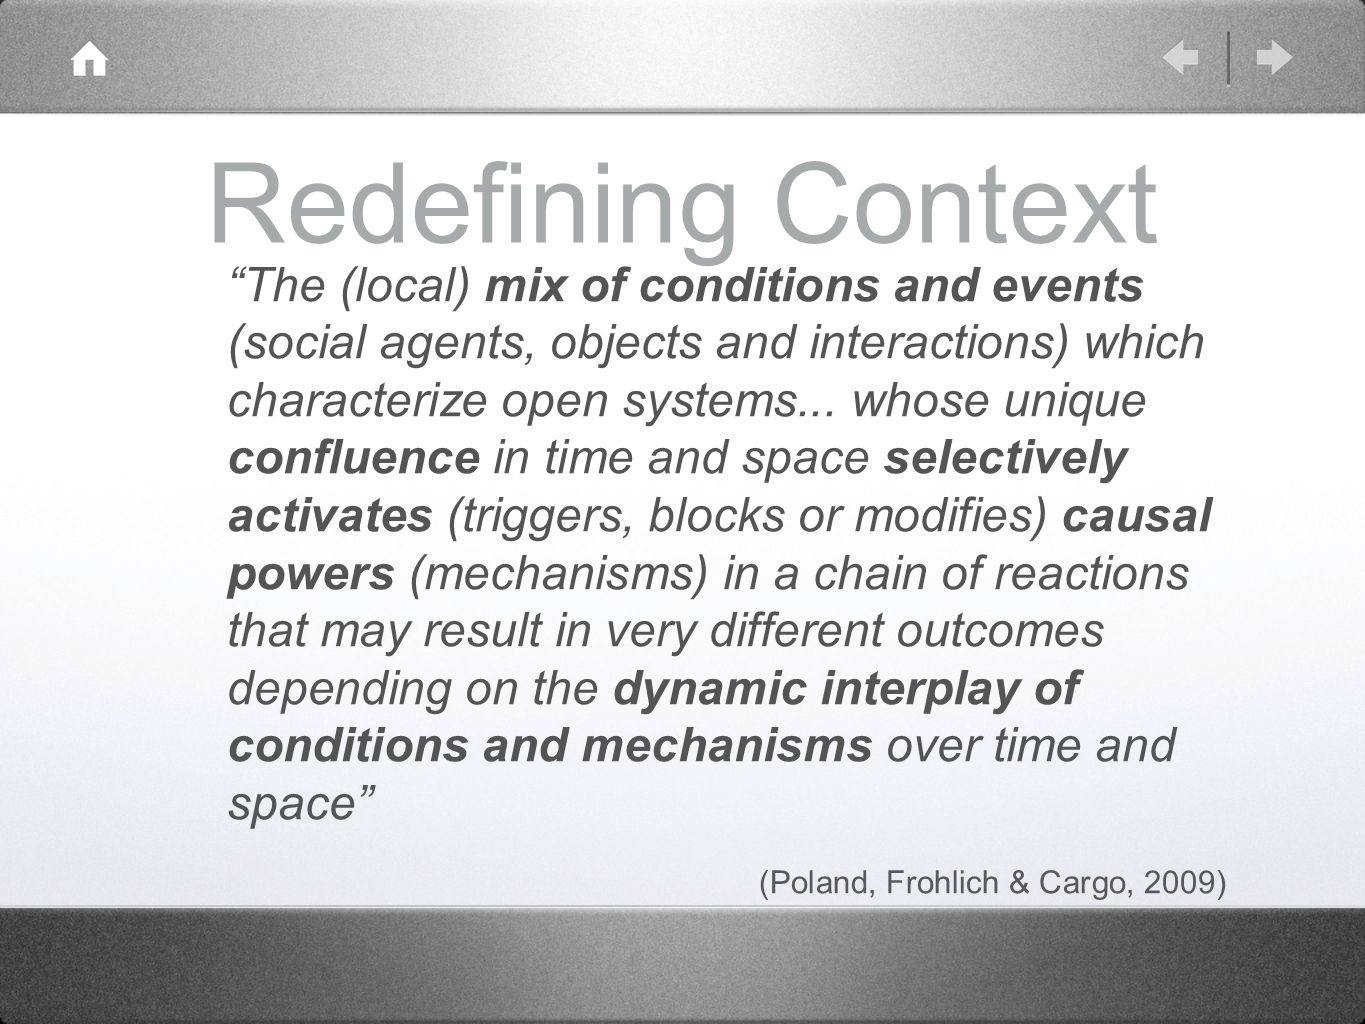 Redefining Context The (local) mix of conditions and events (social agents, objects and interactions) which characterize open systems... whose unique